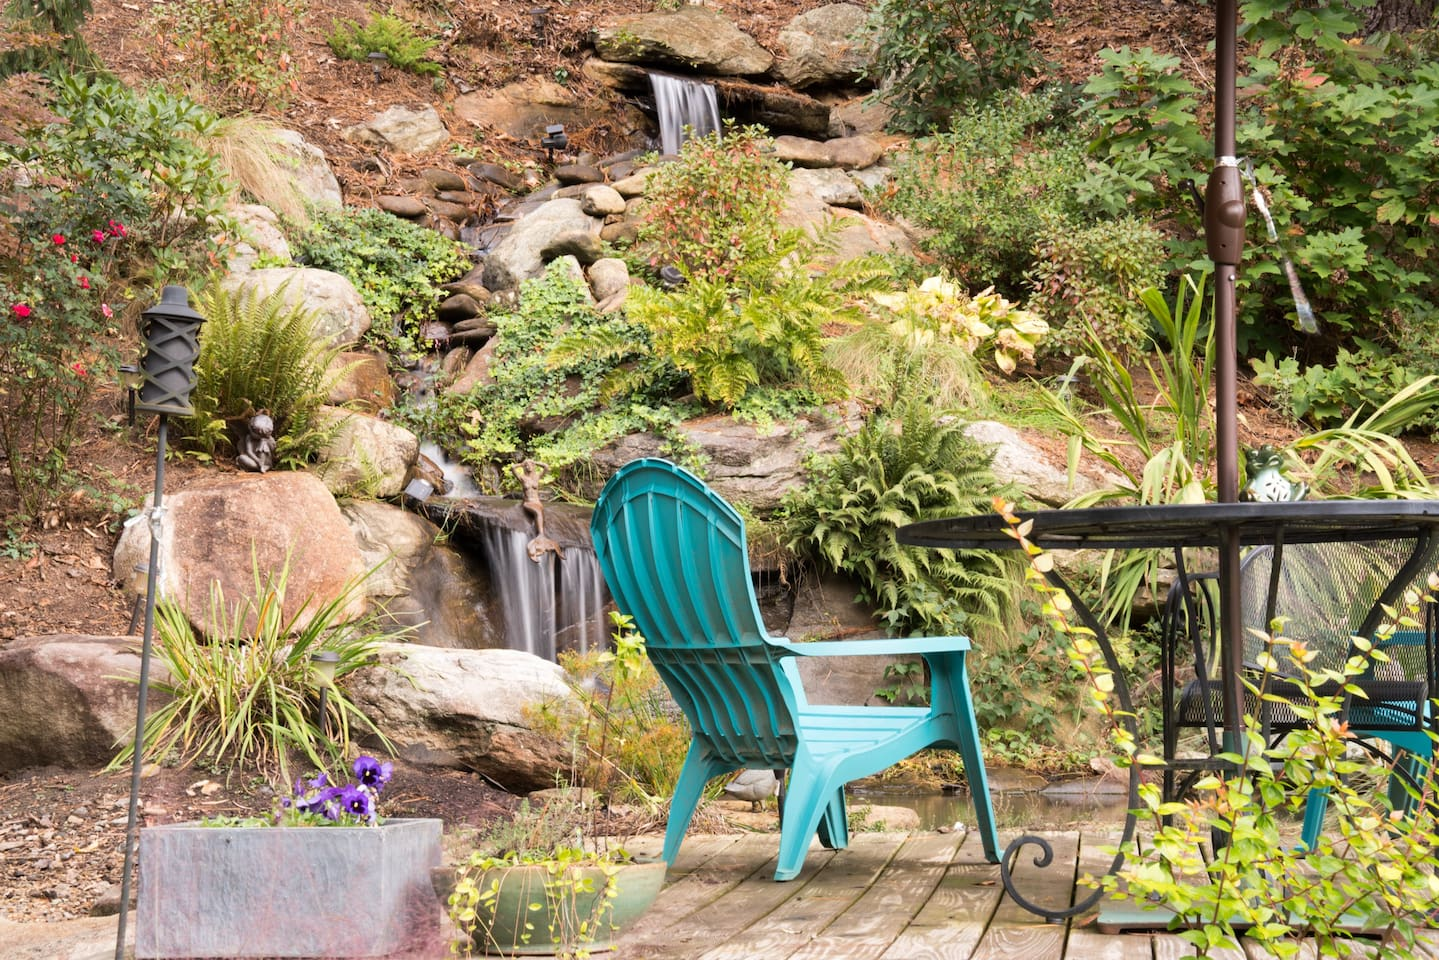 Beautiful water feature designed by the owners - what a peaceful, relaxing place to enjoy a picnic or read a book!